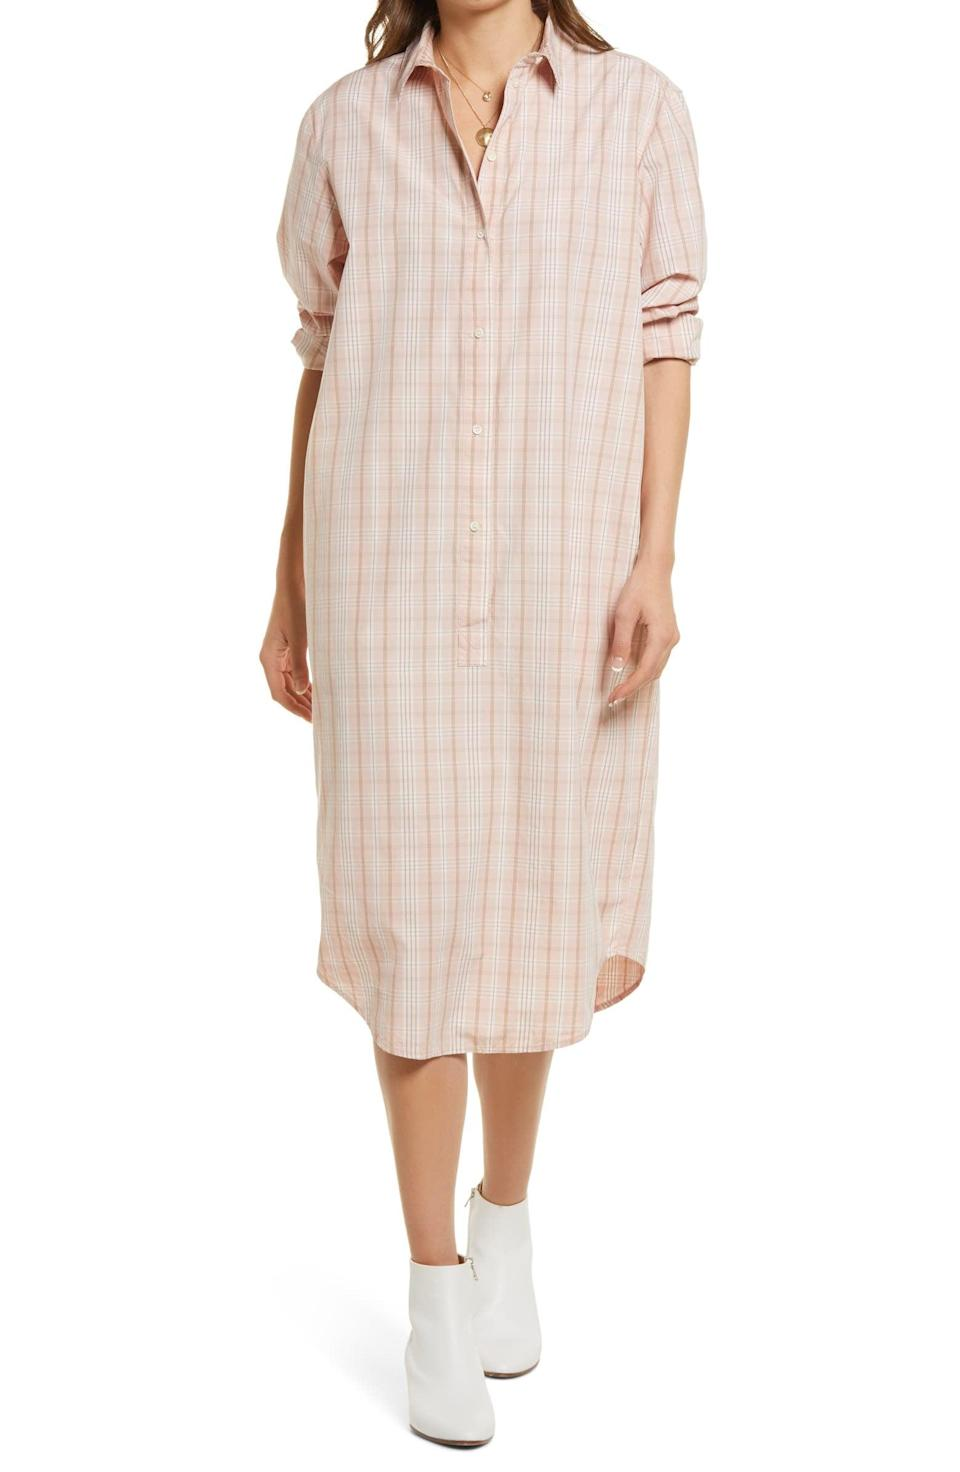 <p>The relaxed silhouette and roomy look of this <span>Treasure &amp; Bond Plaid Long Sleeve Poplin Shirtdress</span> ($40, originally $79) make it a great pick for lazy days when you'd still like to look put-together. The soft, plaid print makes it stand out.</p>